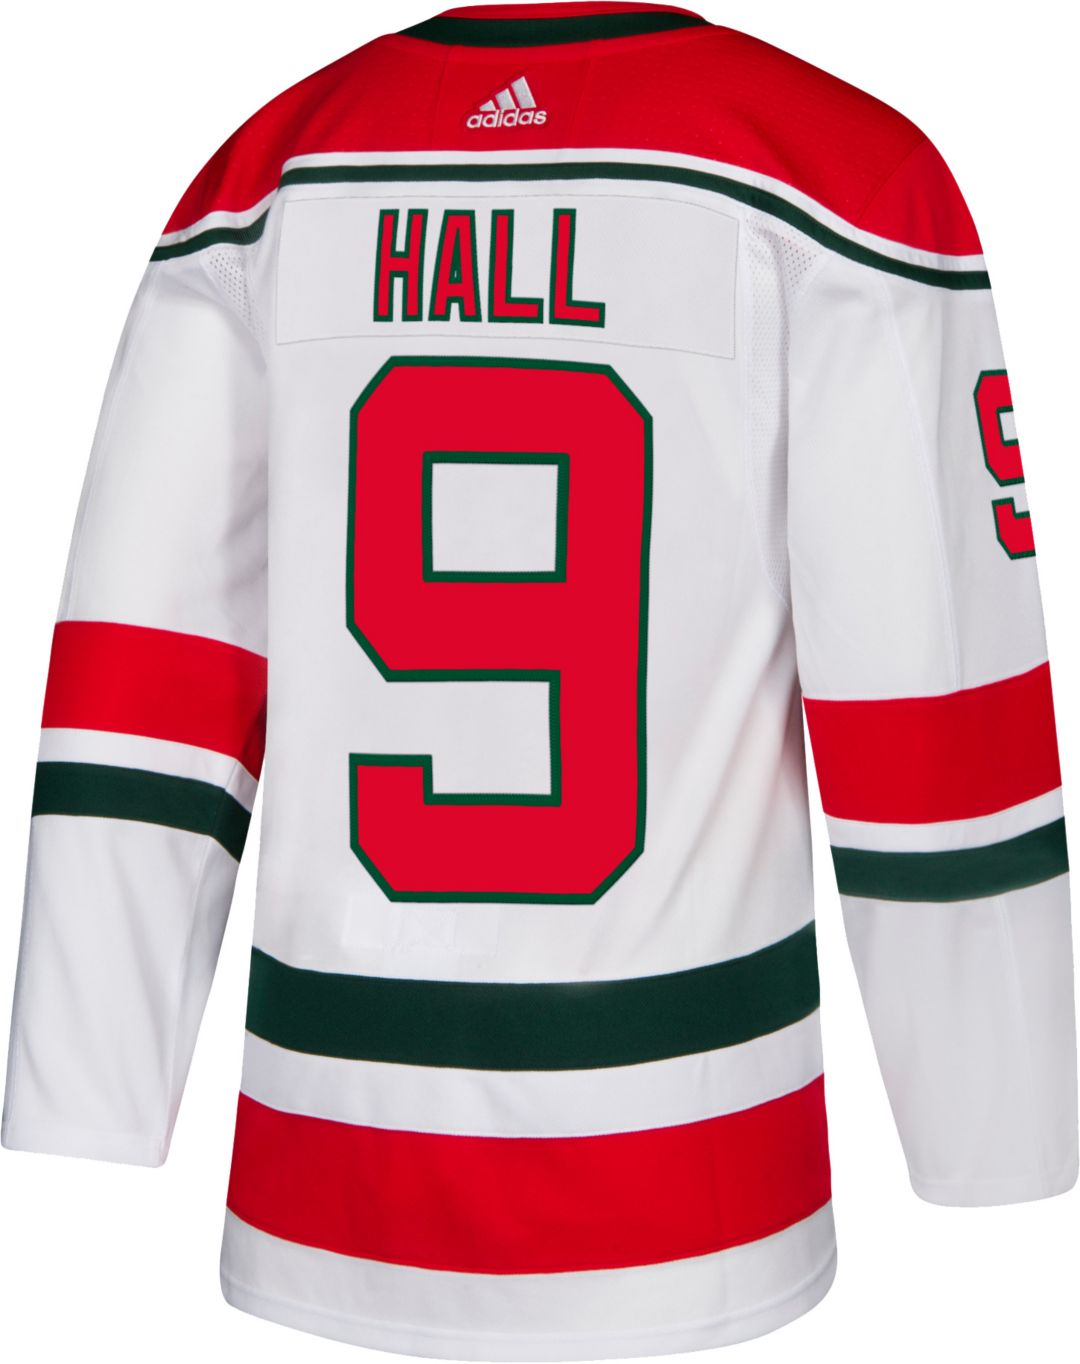 new styles 1148a b1a4e adidas Men's New Jersey Devils Taylor Hall #9 Authentic Pro Retro Jersey